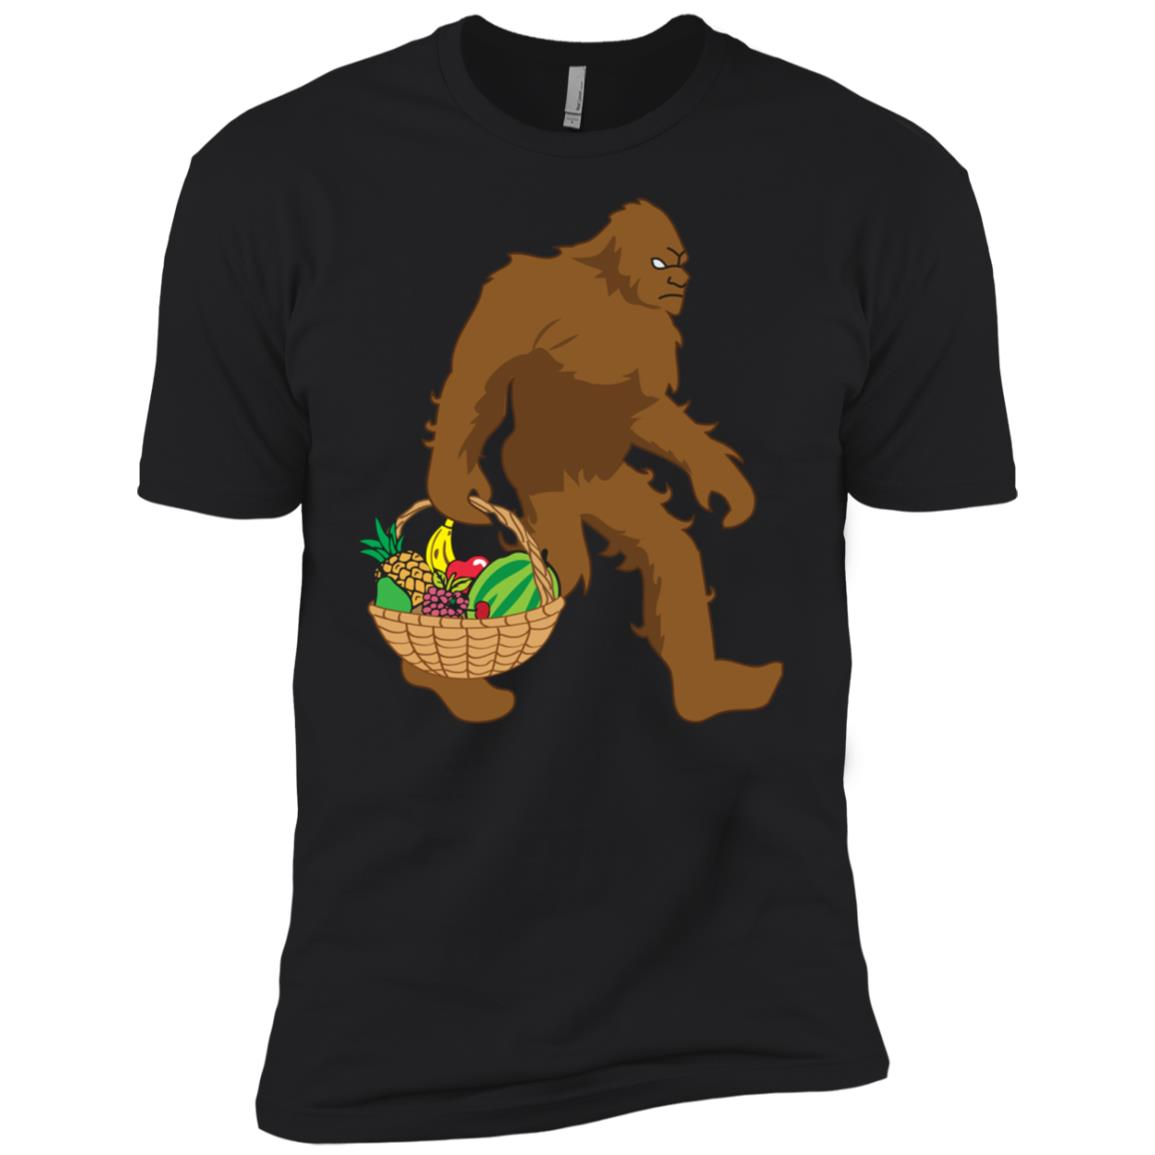 Believe Bigfoot Carrying Fruit Tee Men Short Sleeve T-Shirt